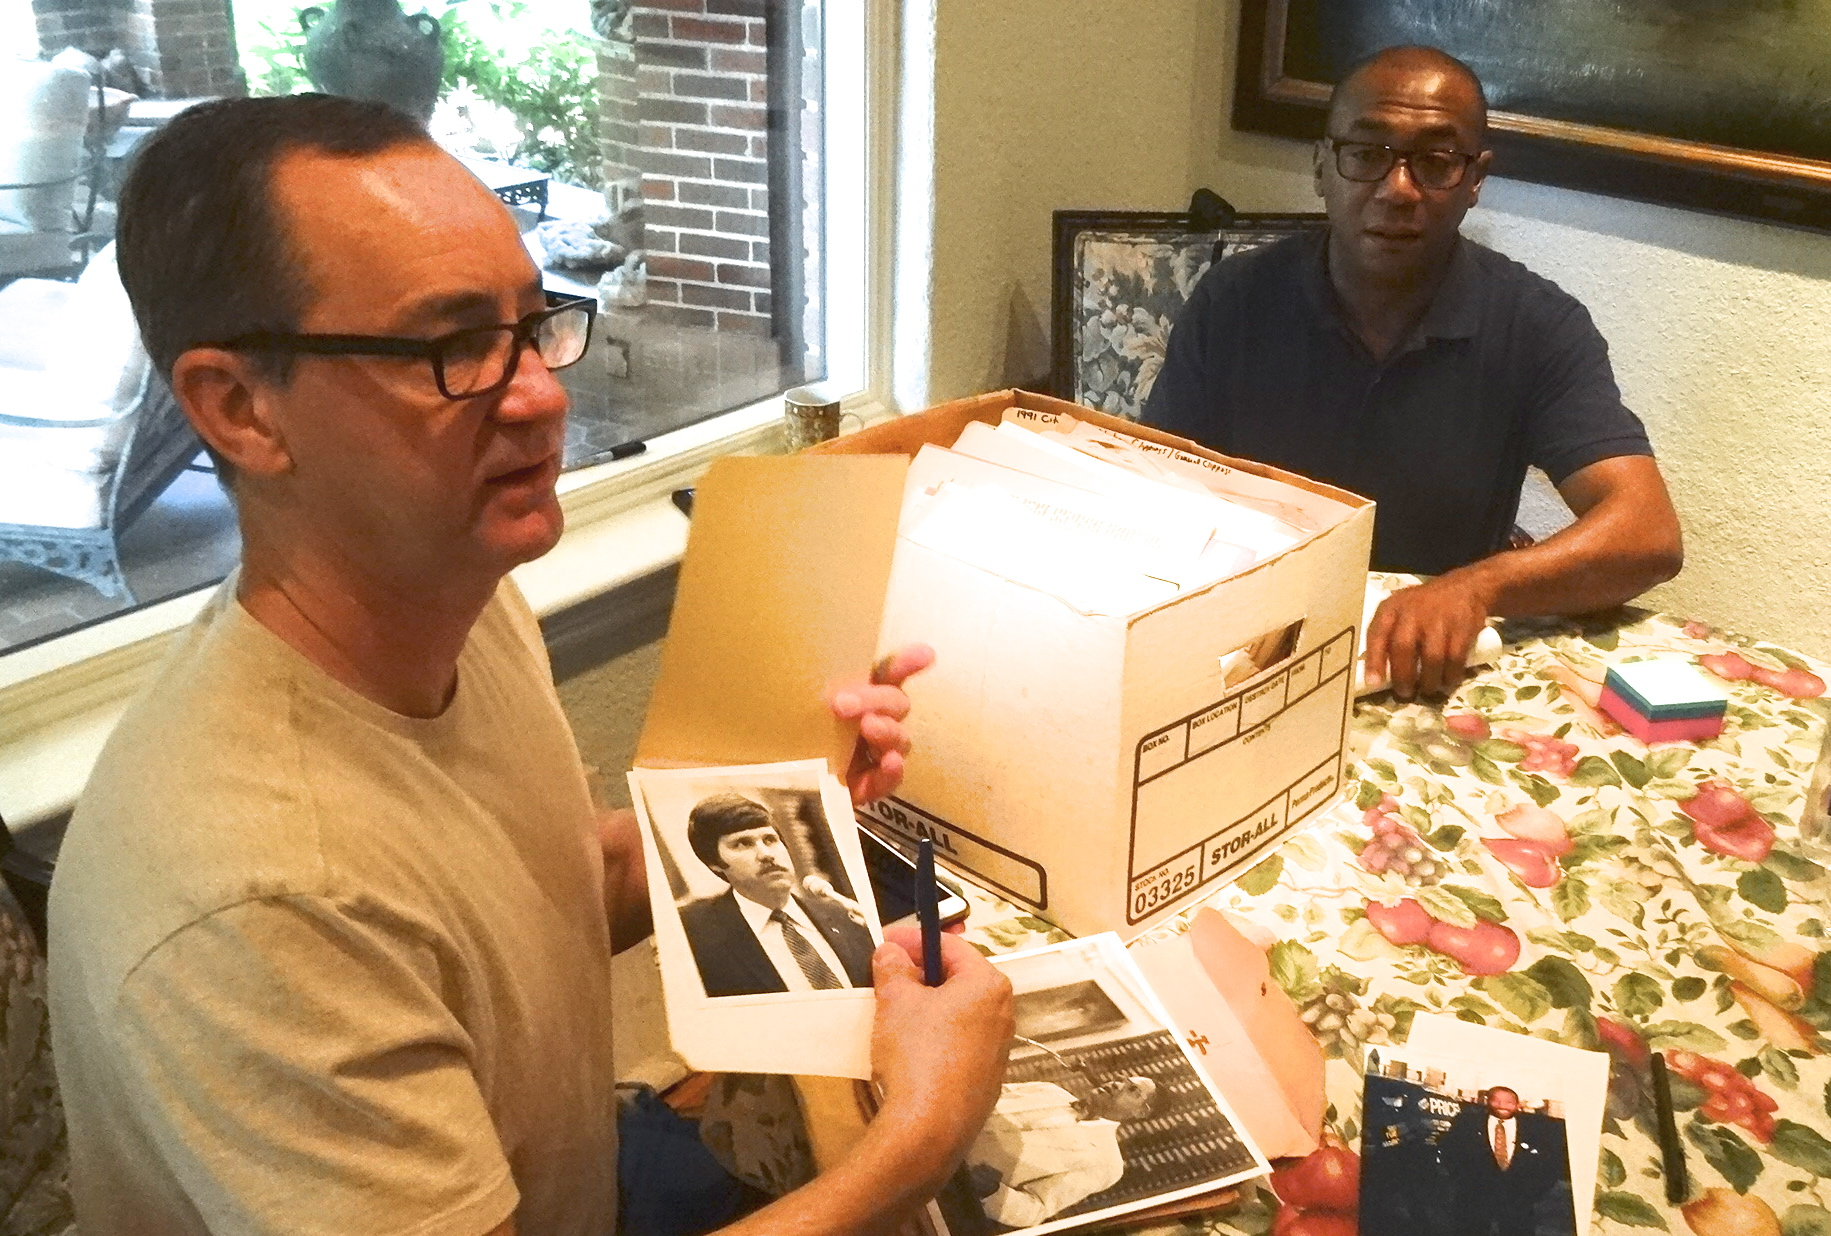 Board Members Steve Atkinson and Terry Loftis curate documents donated to The Dallas Way by the GLBT community.